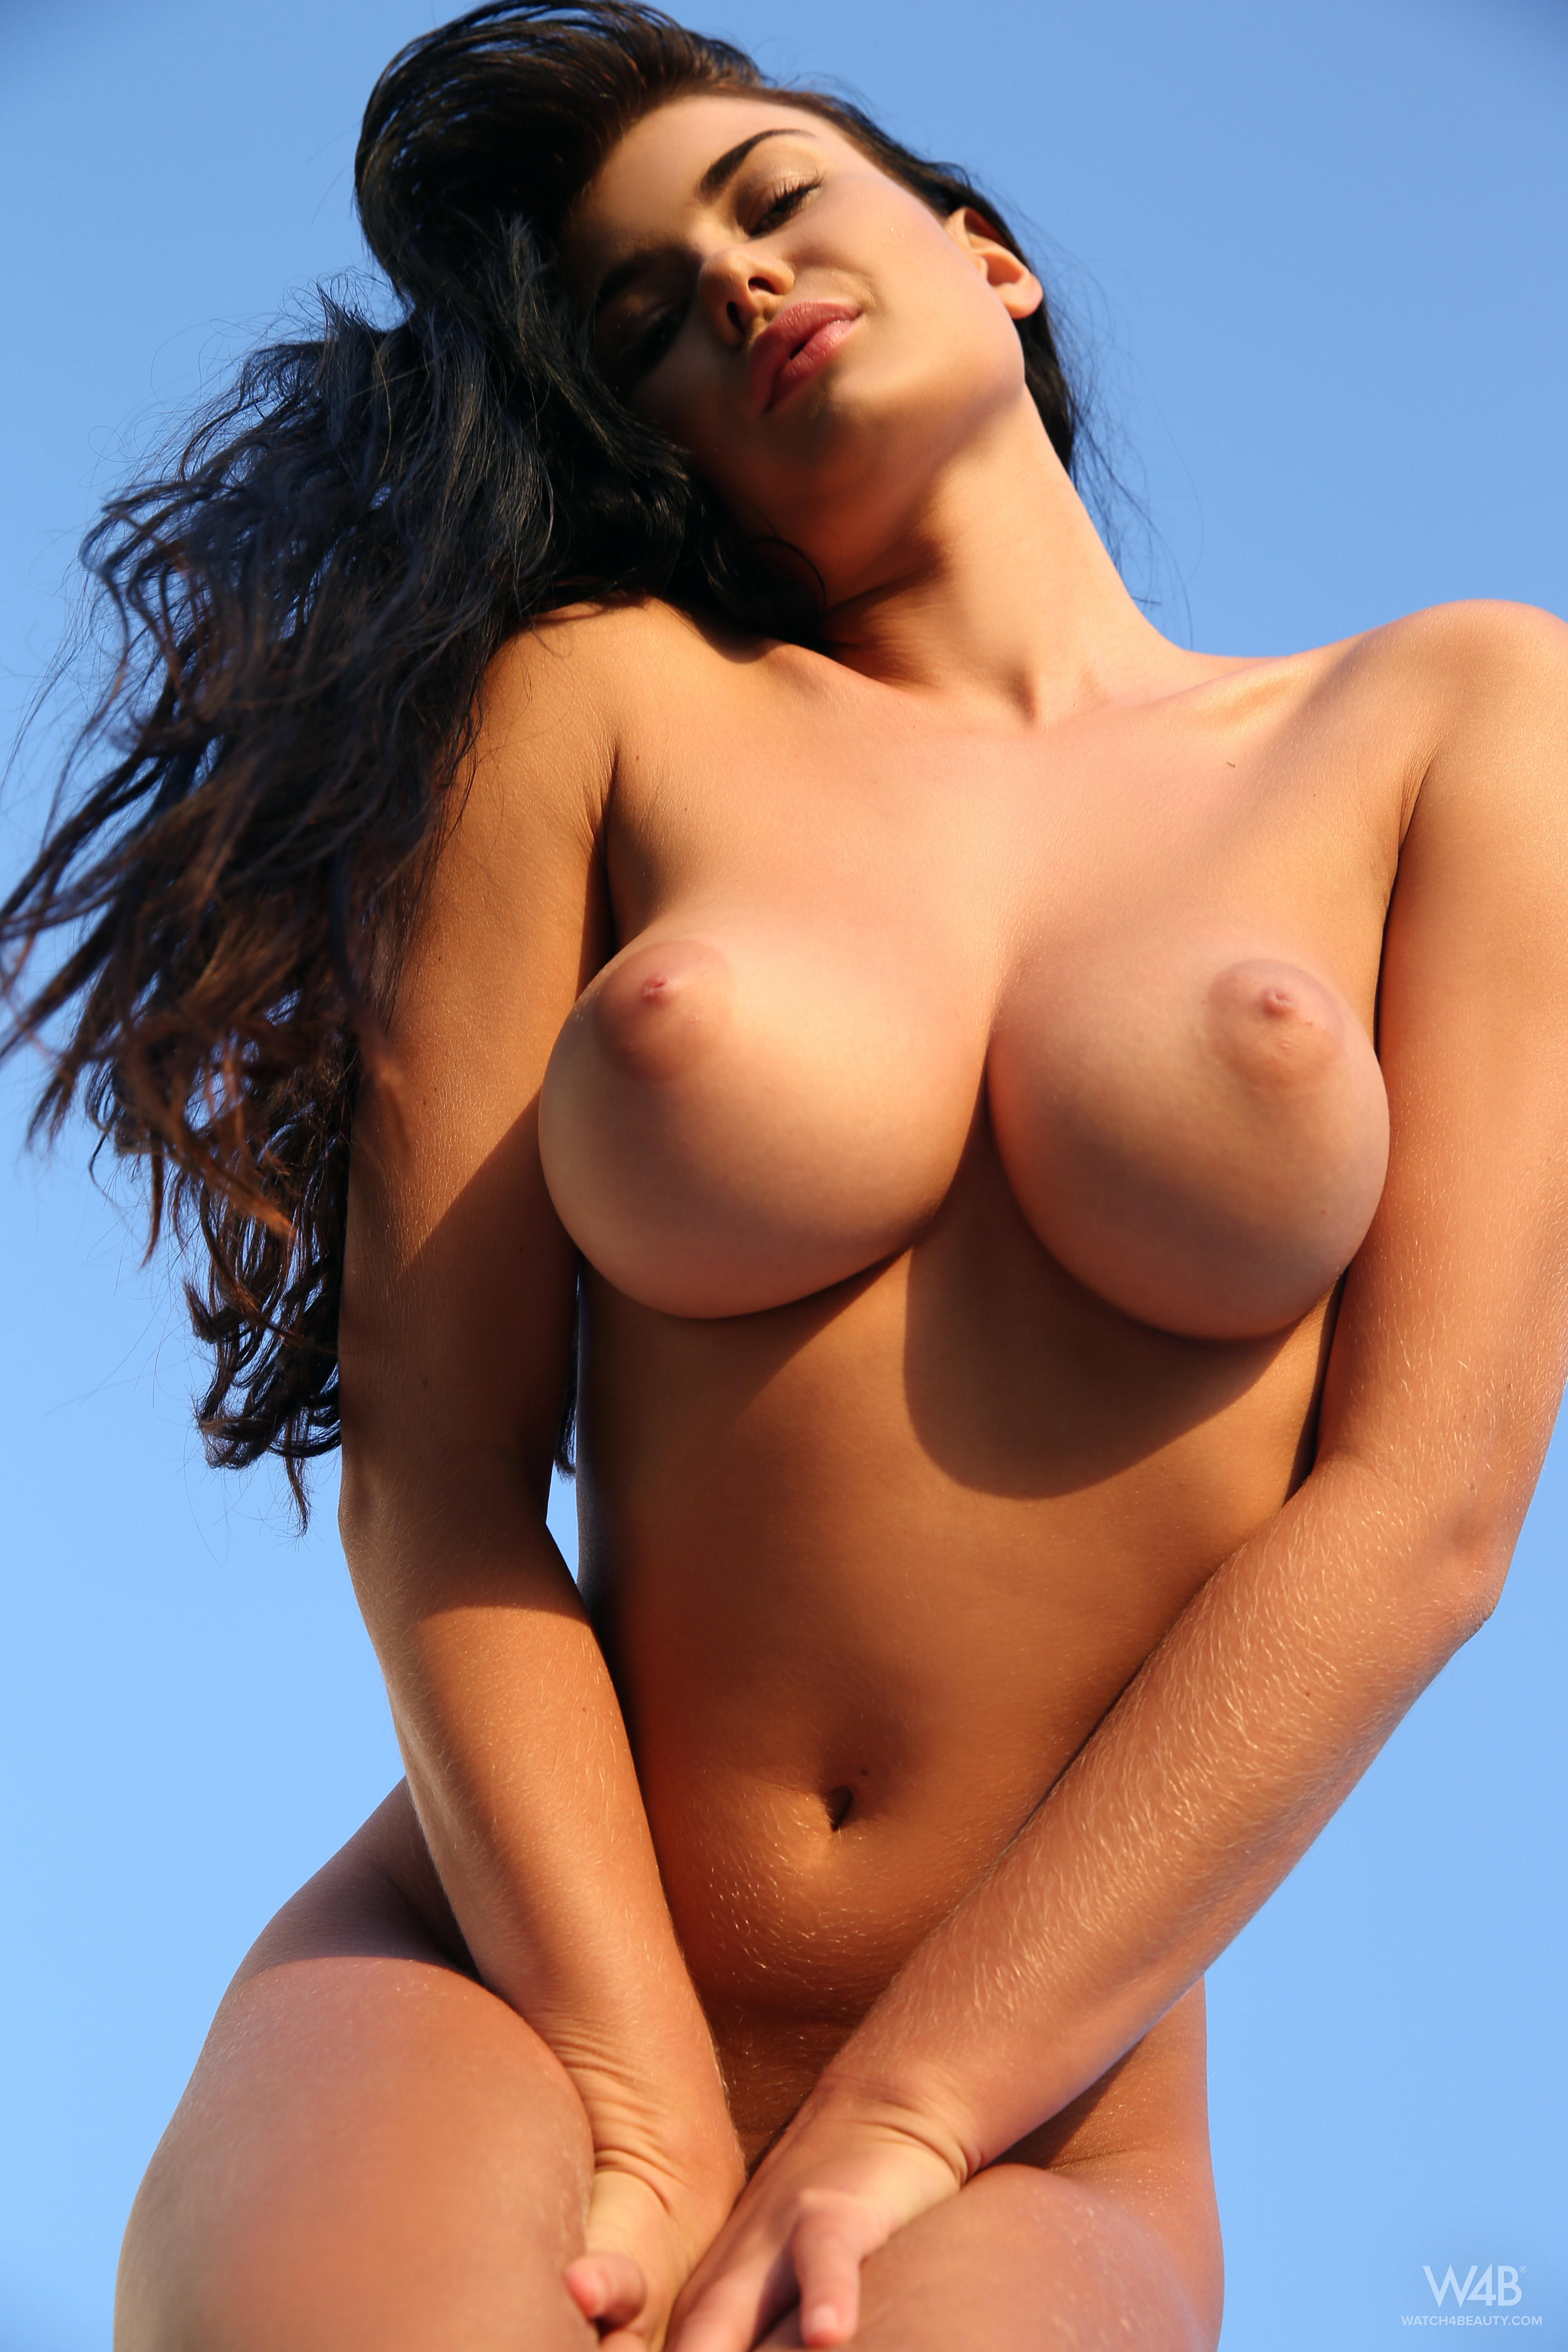 Chinese Girls With Huge Breasts Naked Pictures